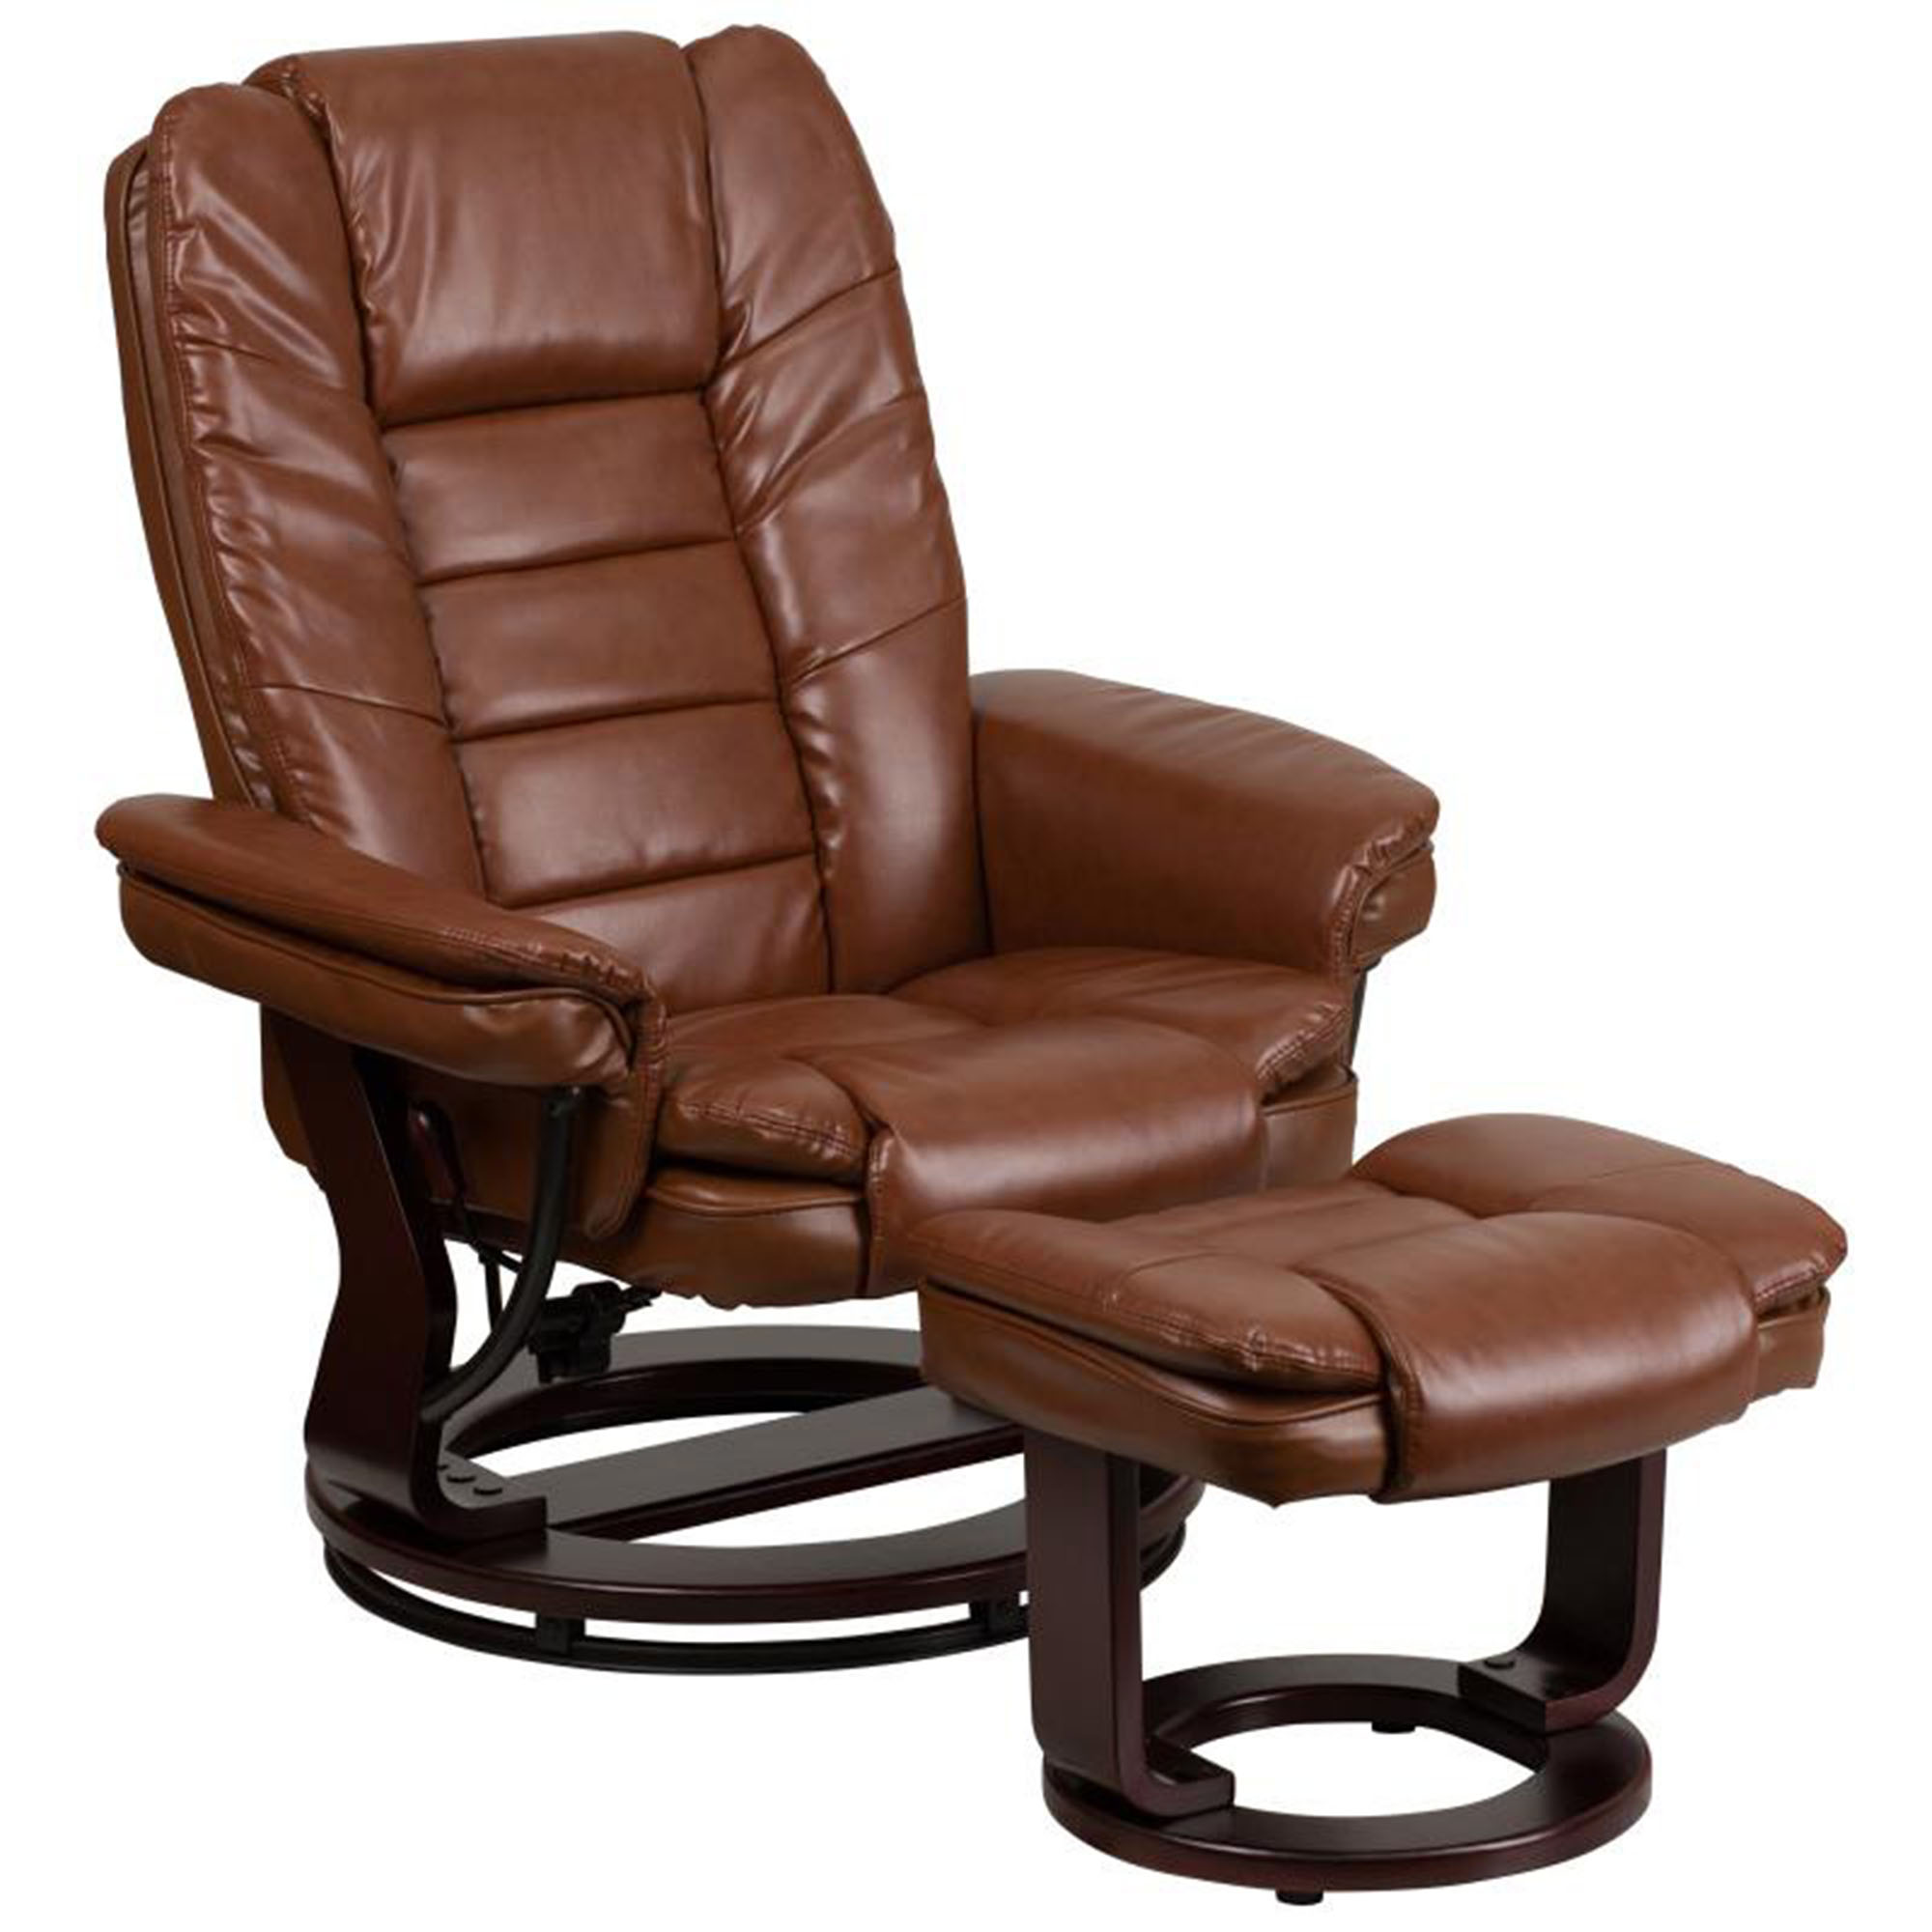 Offex Contemporary Brown Vintage Leather Recliner And Ottoman With Swiveling Mahogany Wood Base [BT-7818-VIN-GG]